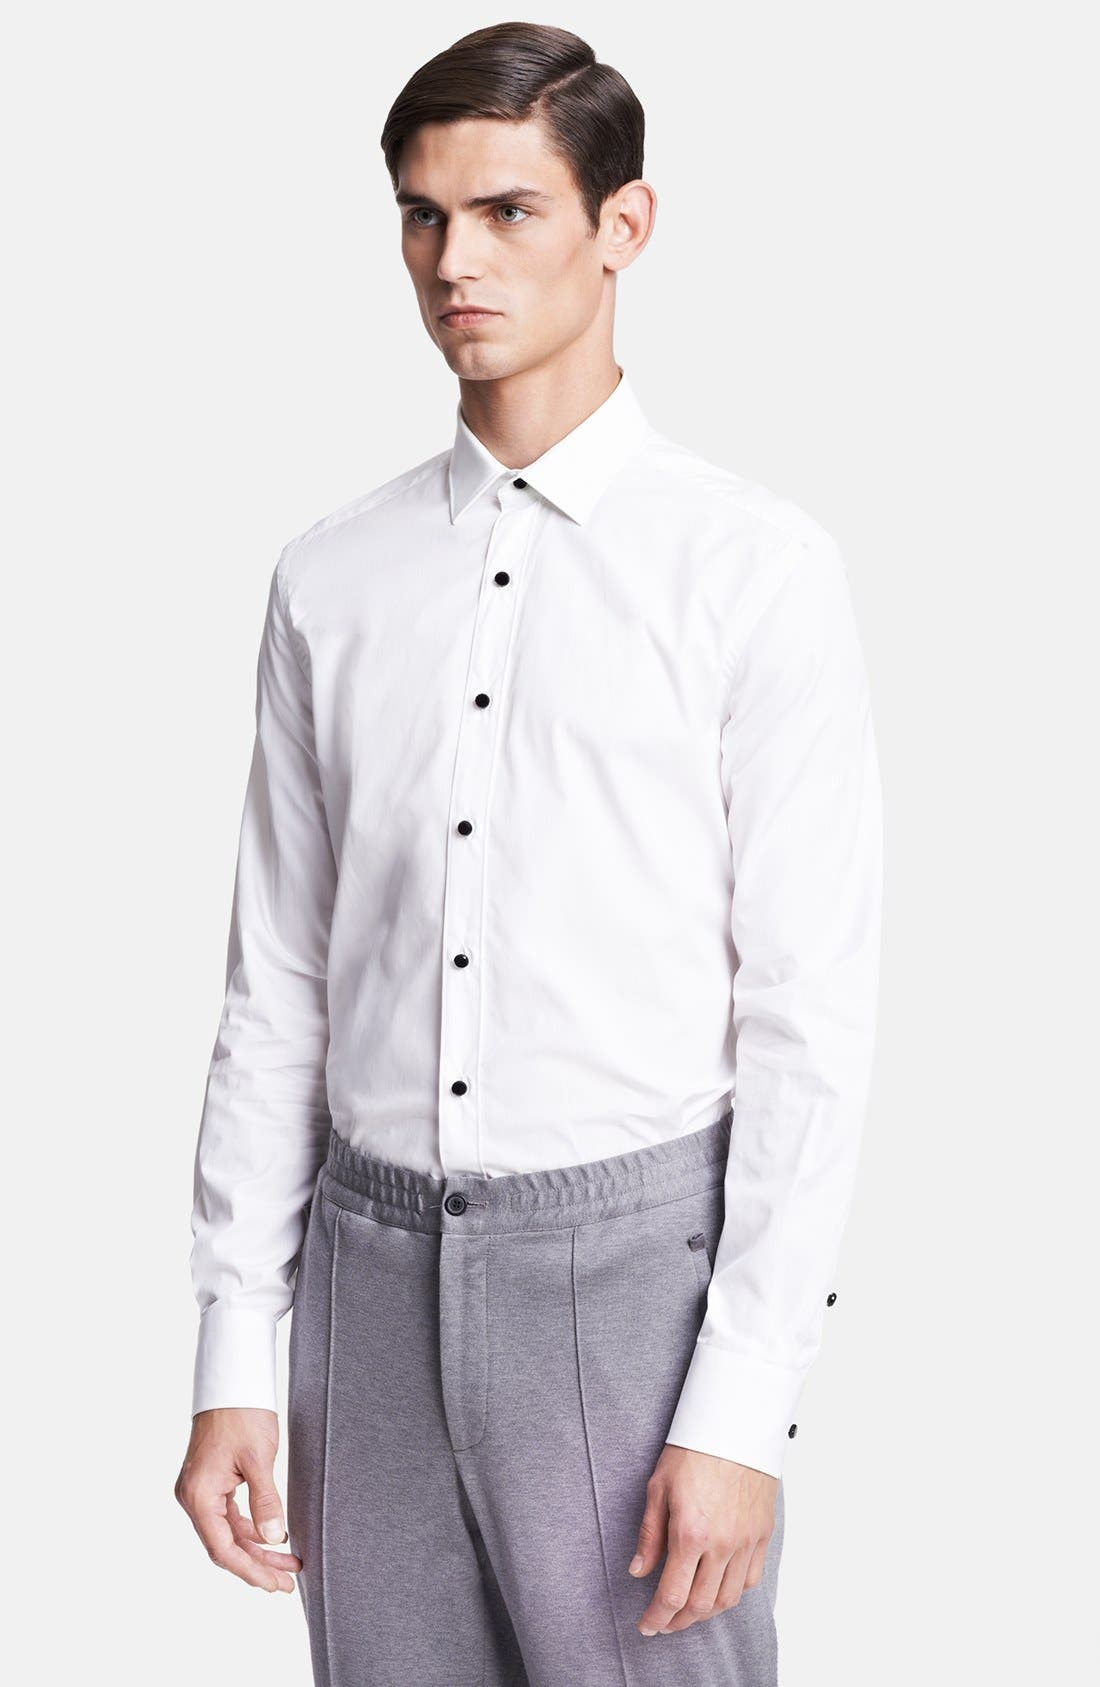 Main Image - Lanvin Tuxedo Shirt with Glass Button Details